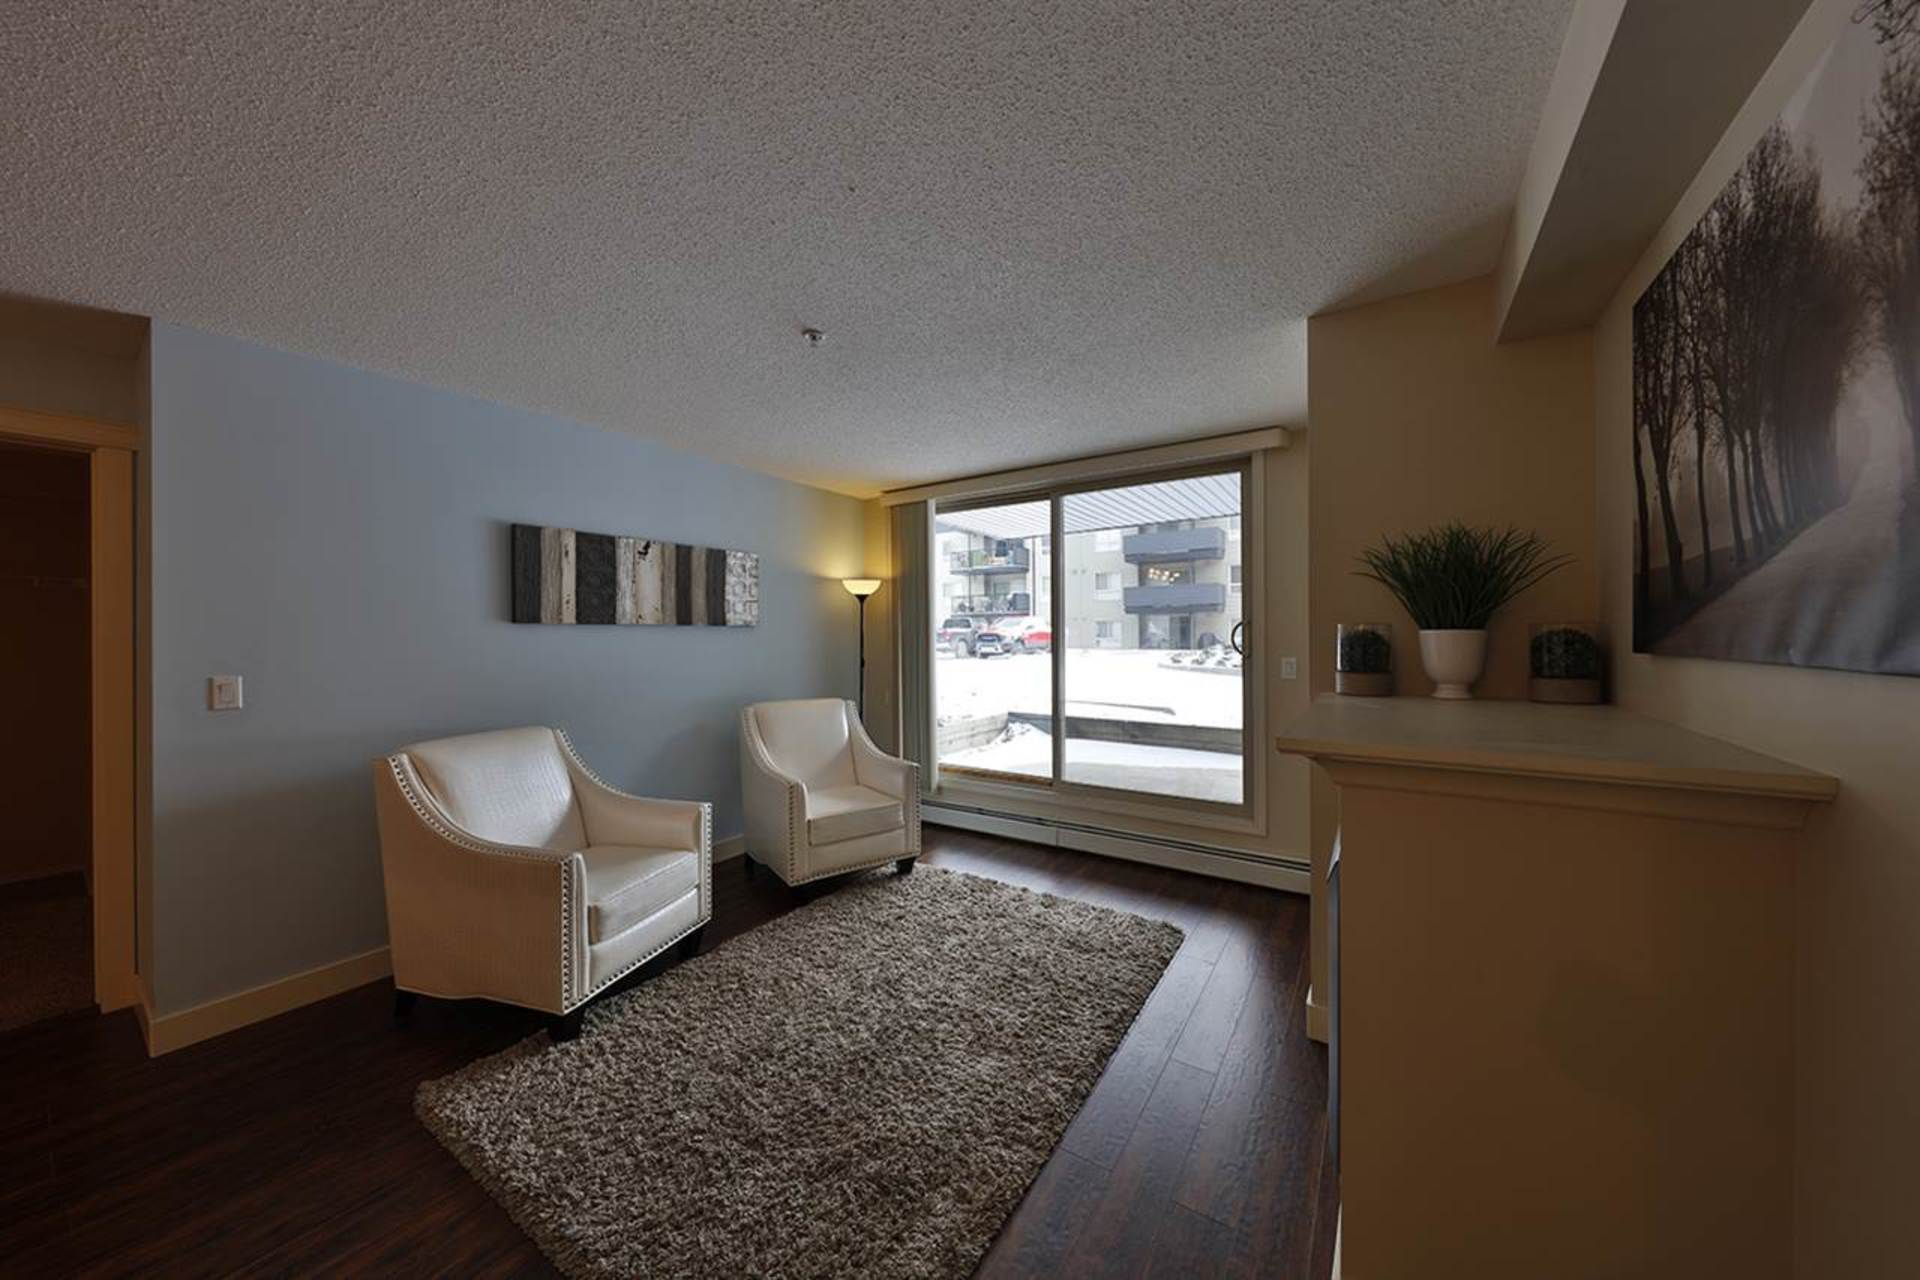 17011-67-avenue-callingwood-south-edmonton-07 at 102 - 17011 67 Avenue, Callingwood South, Edmonton